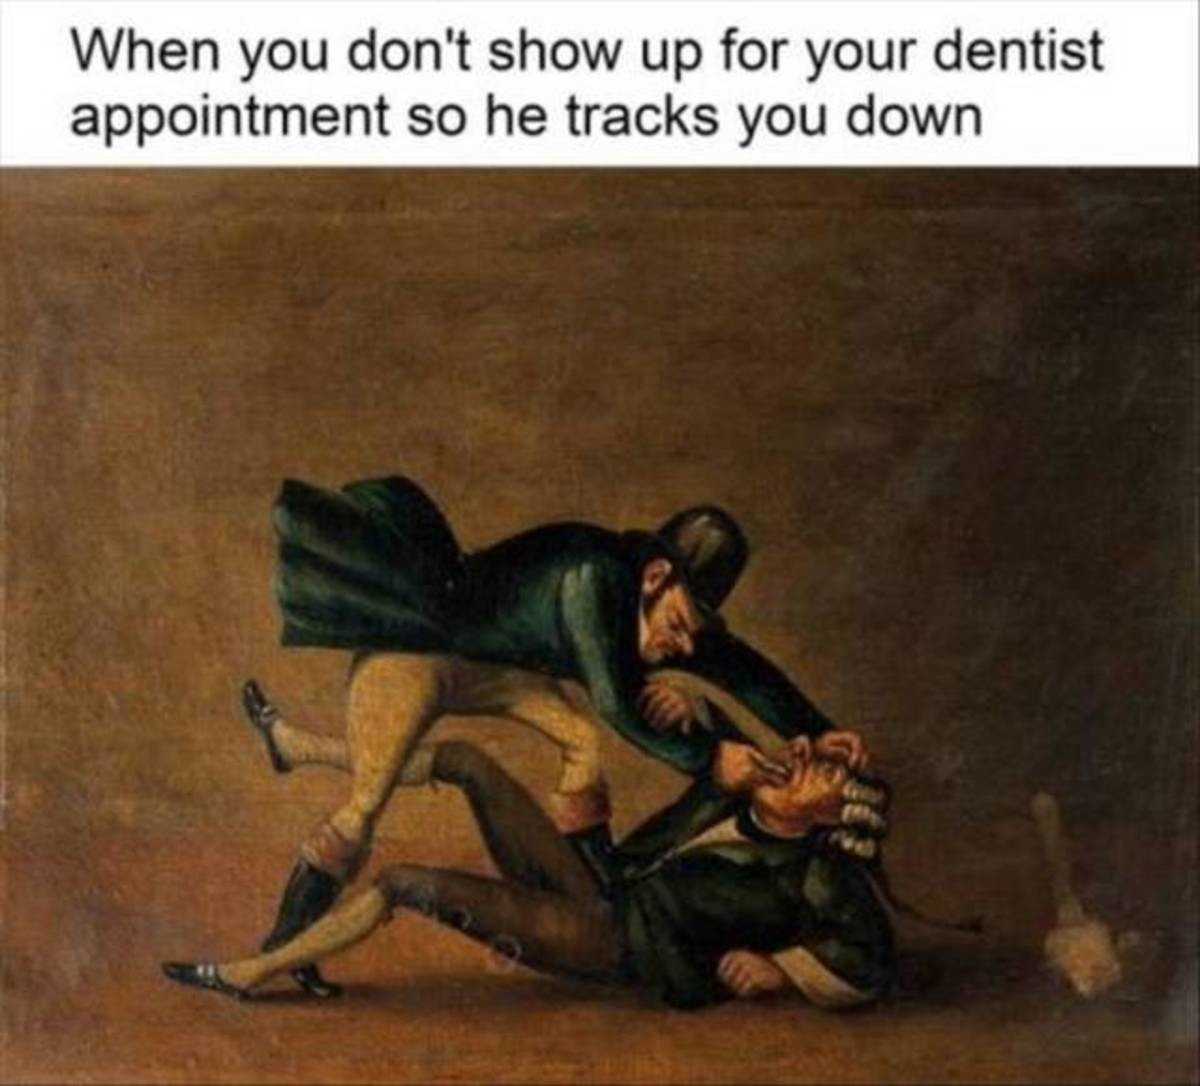 "Take care of your teeth. .. imagen a group of dentist jumbs you and one writes in cursive on the wall ""floss his teeth"""